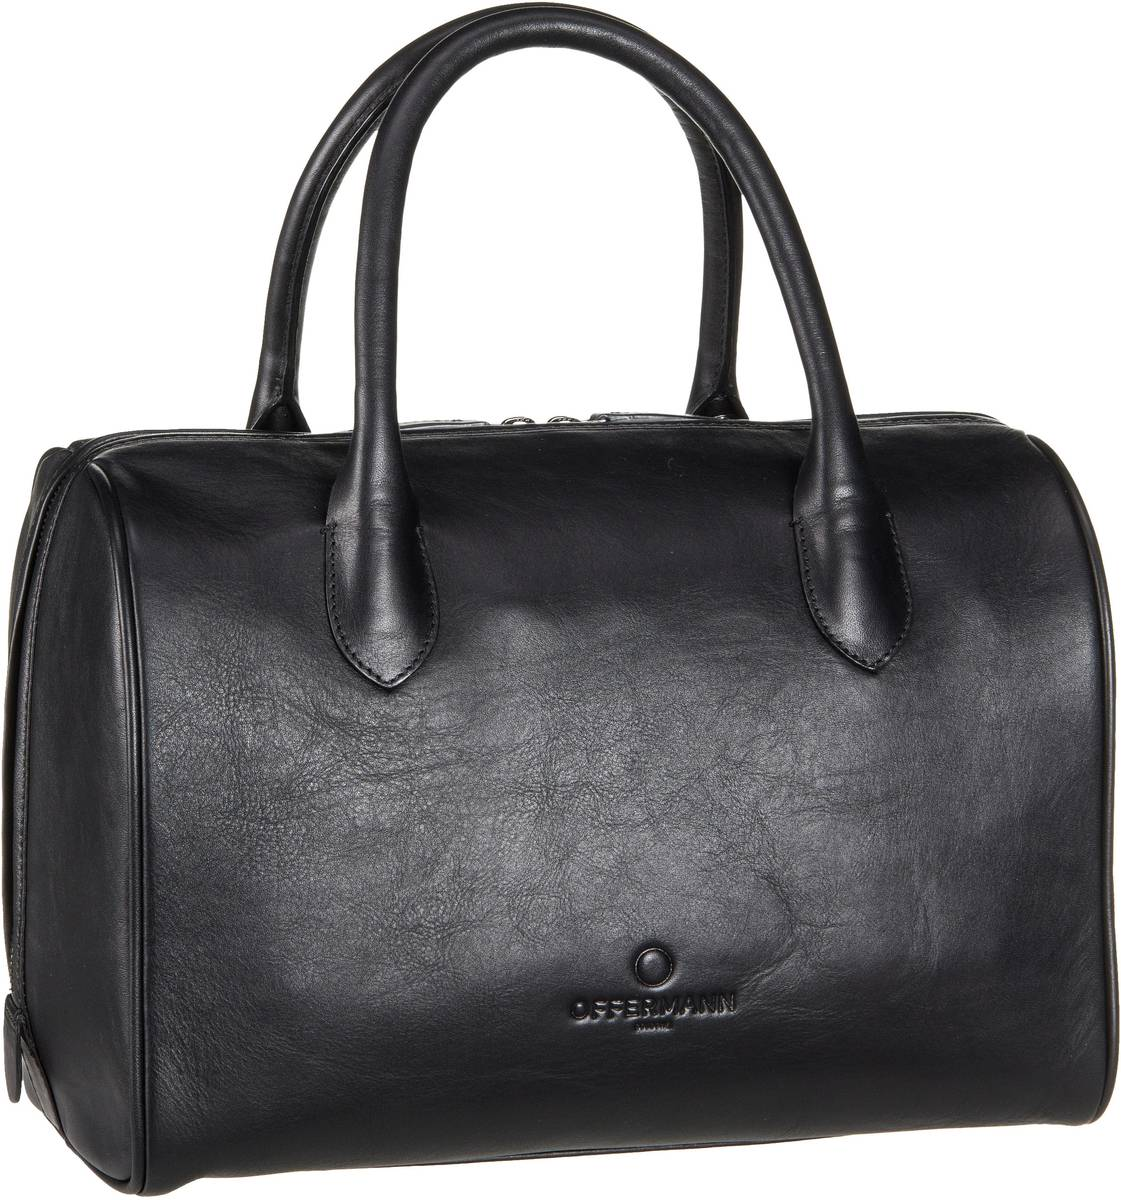 Offermann Bowler Tender Deep Black - Handtasche